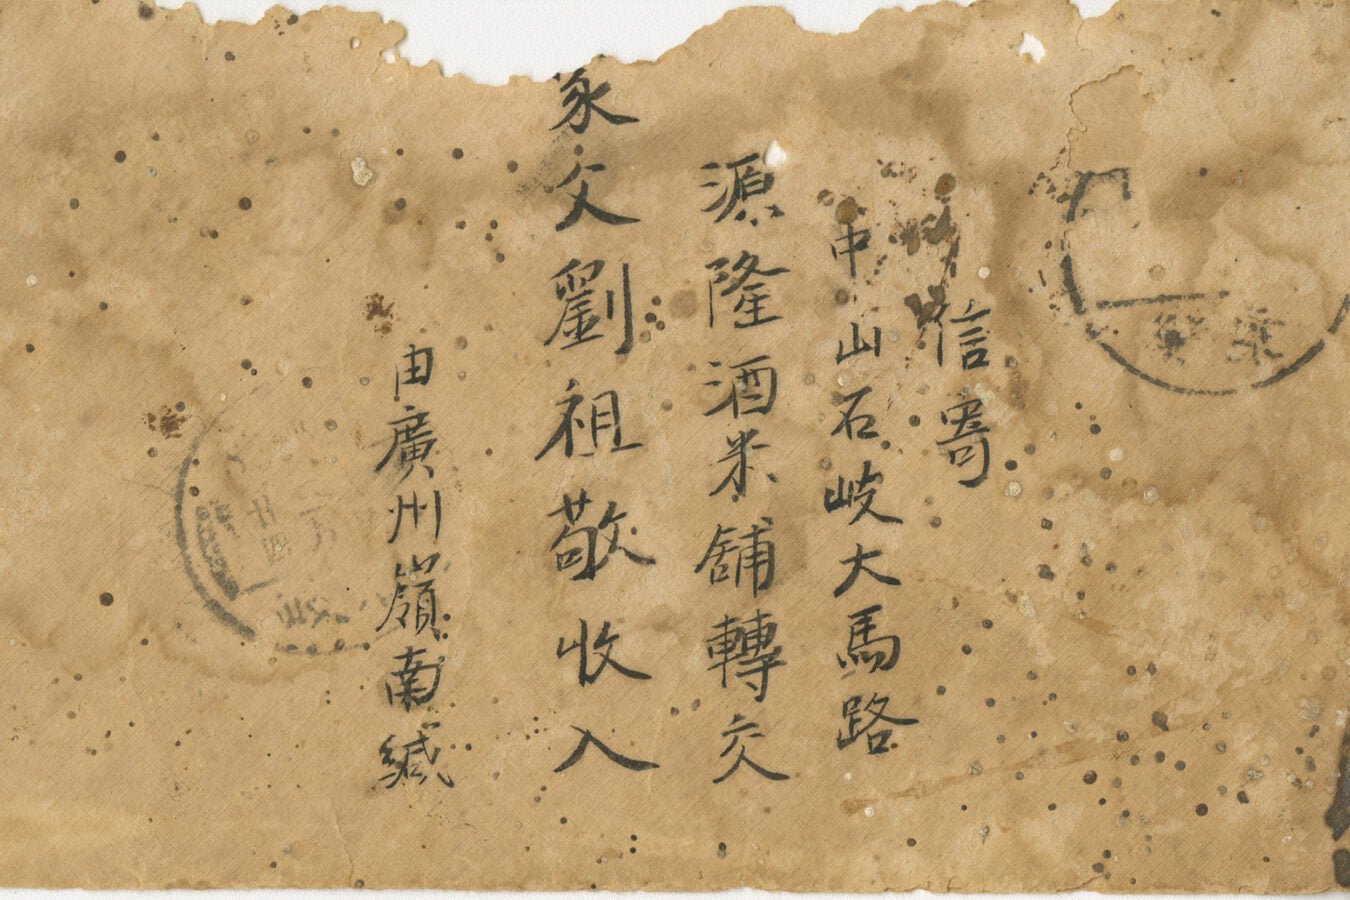 Paper with Chinese script on it.